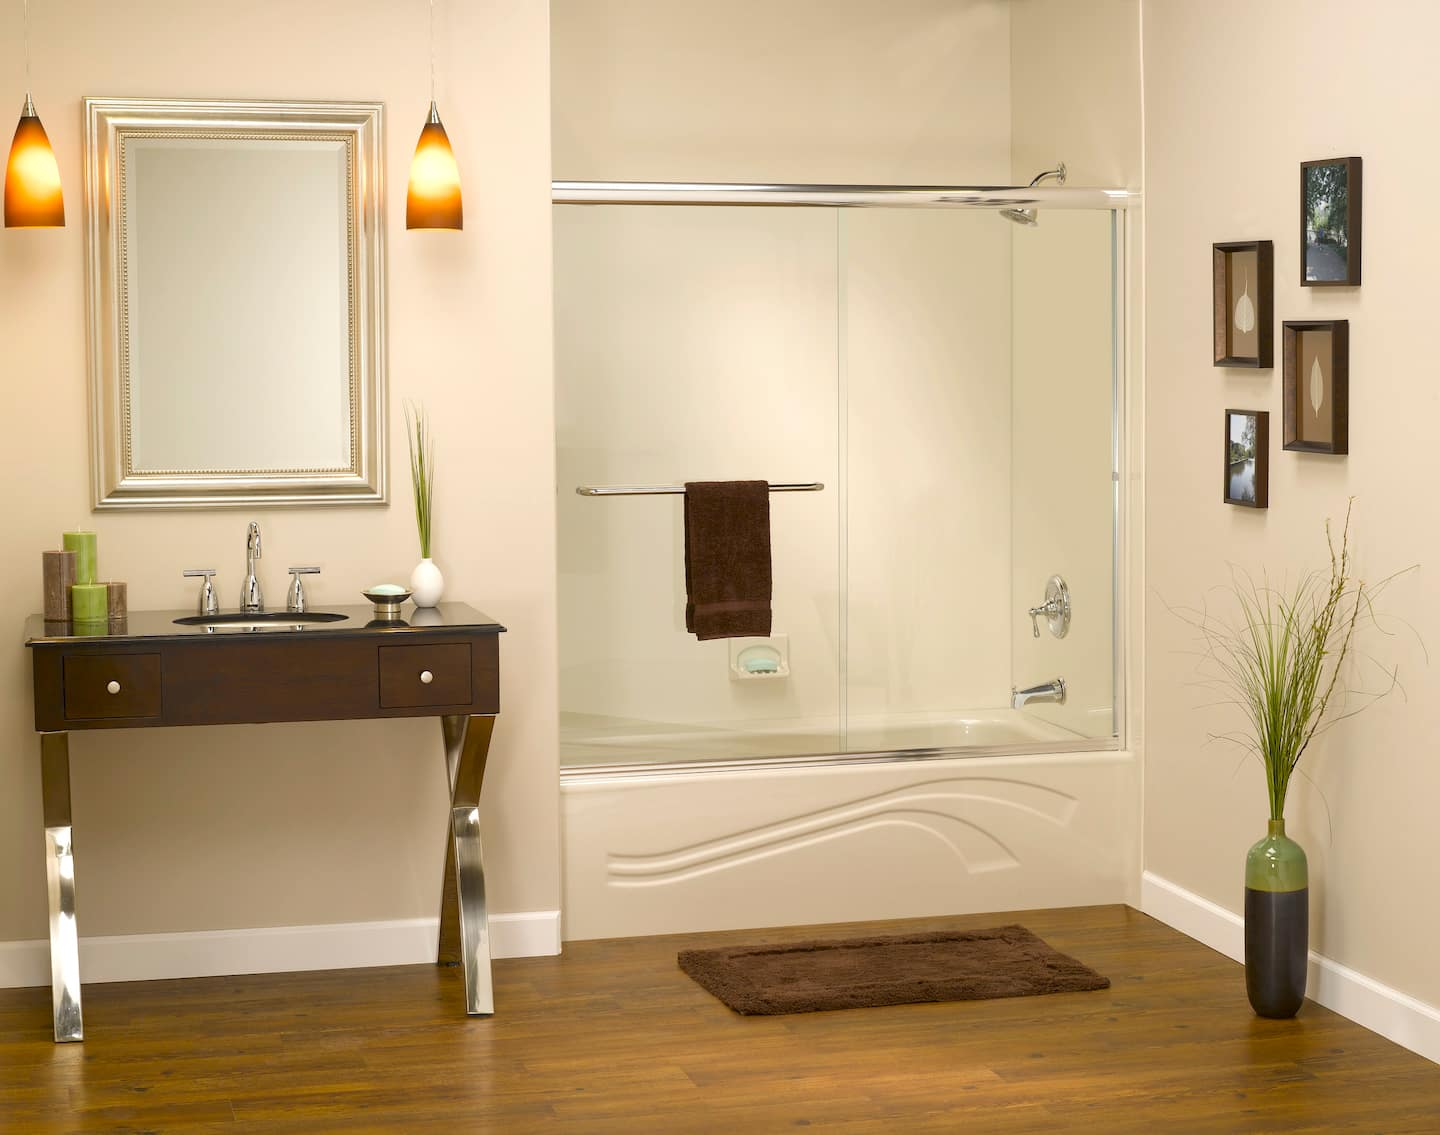 Remodeling Bathroom Do I Need Permit is bathroom remodeling a diy project? | angie's list